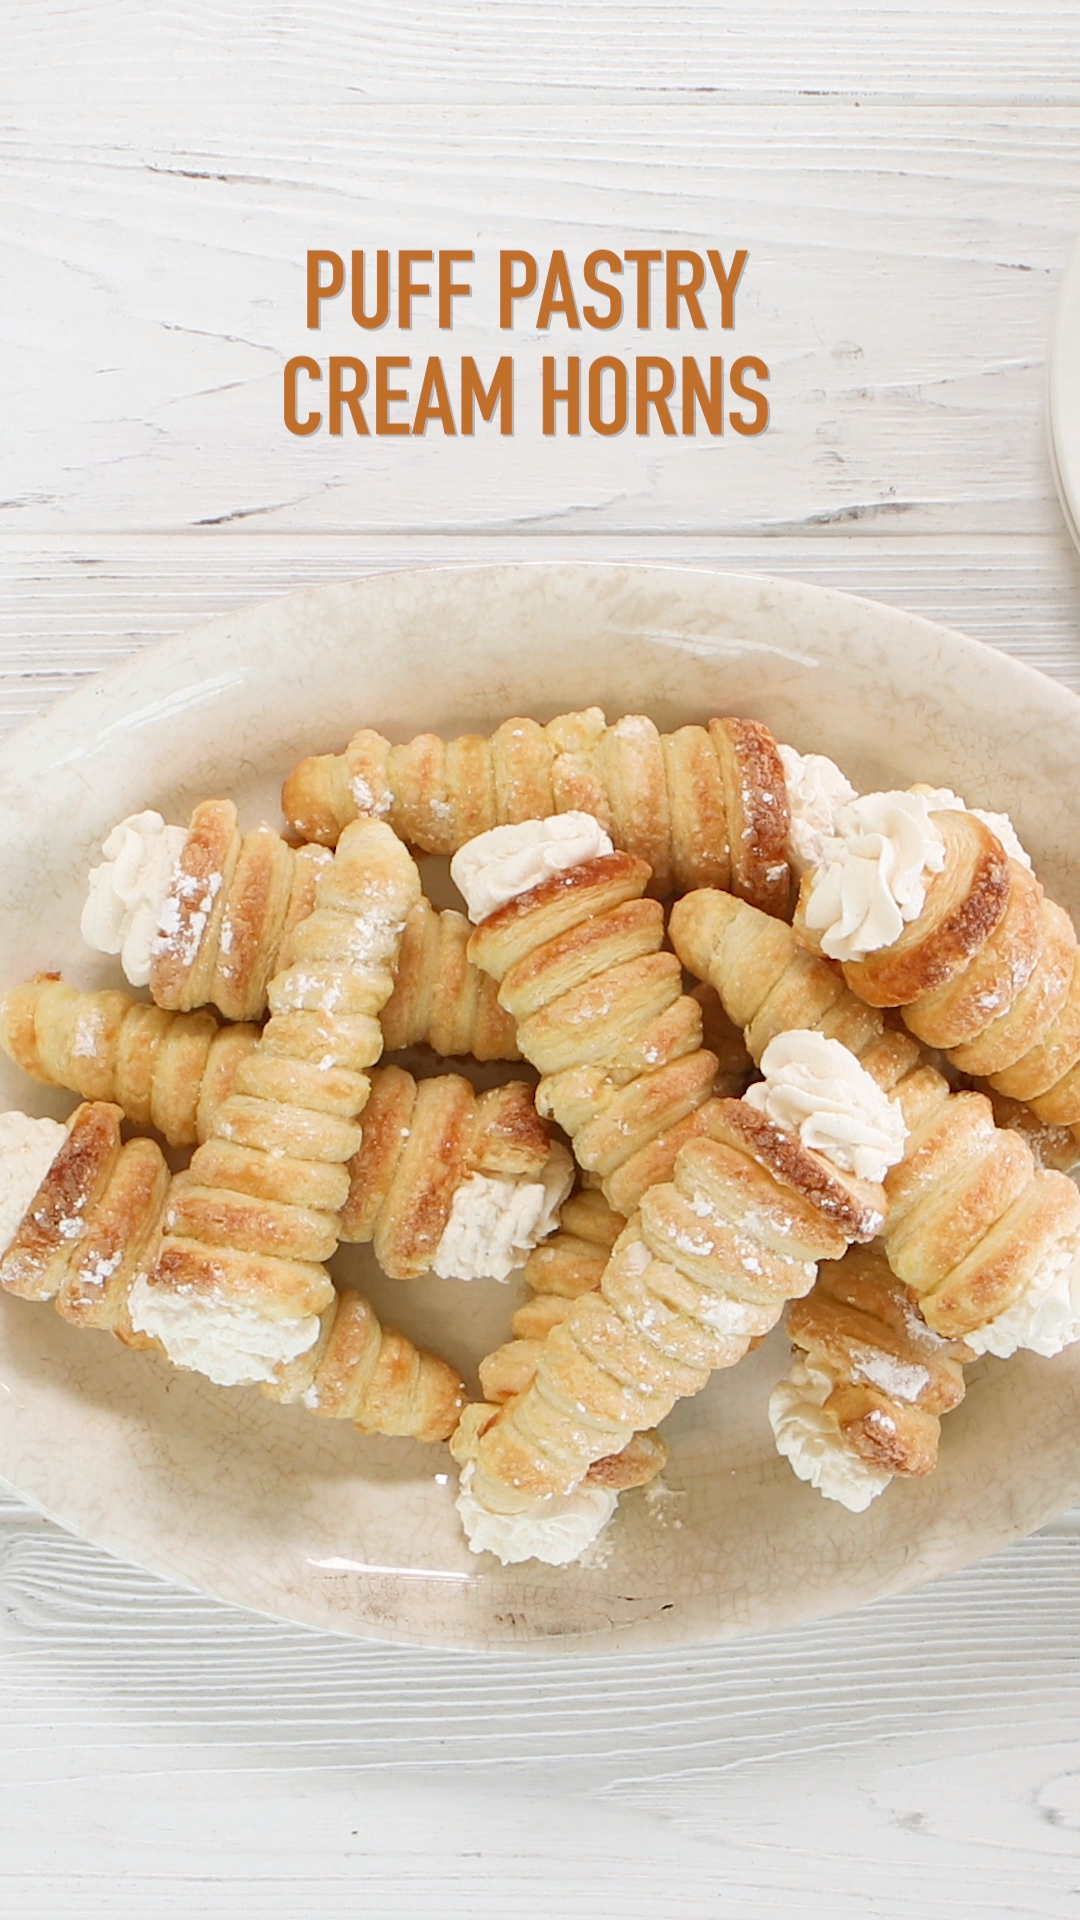 Puff Pastry Cream Horns   Imperial Sugar is part of Desserts - Puff Pastry Horns (aka Italian Cream Horns) are scrumptious puff pastries wrapped around a metal horn and baked till golden and flaky  These little five ingredient wonders can be filled with whipped cream, custard or buttercream icing